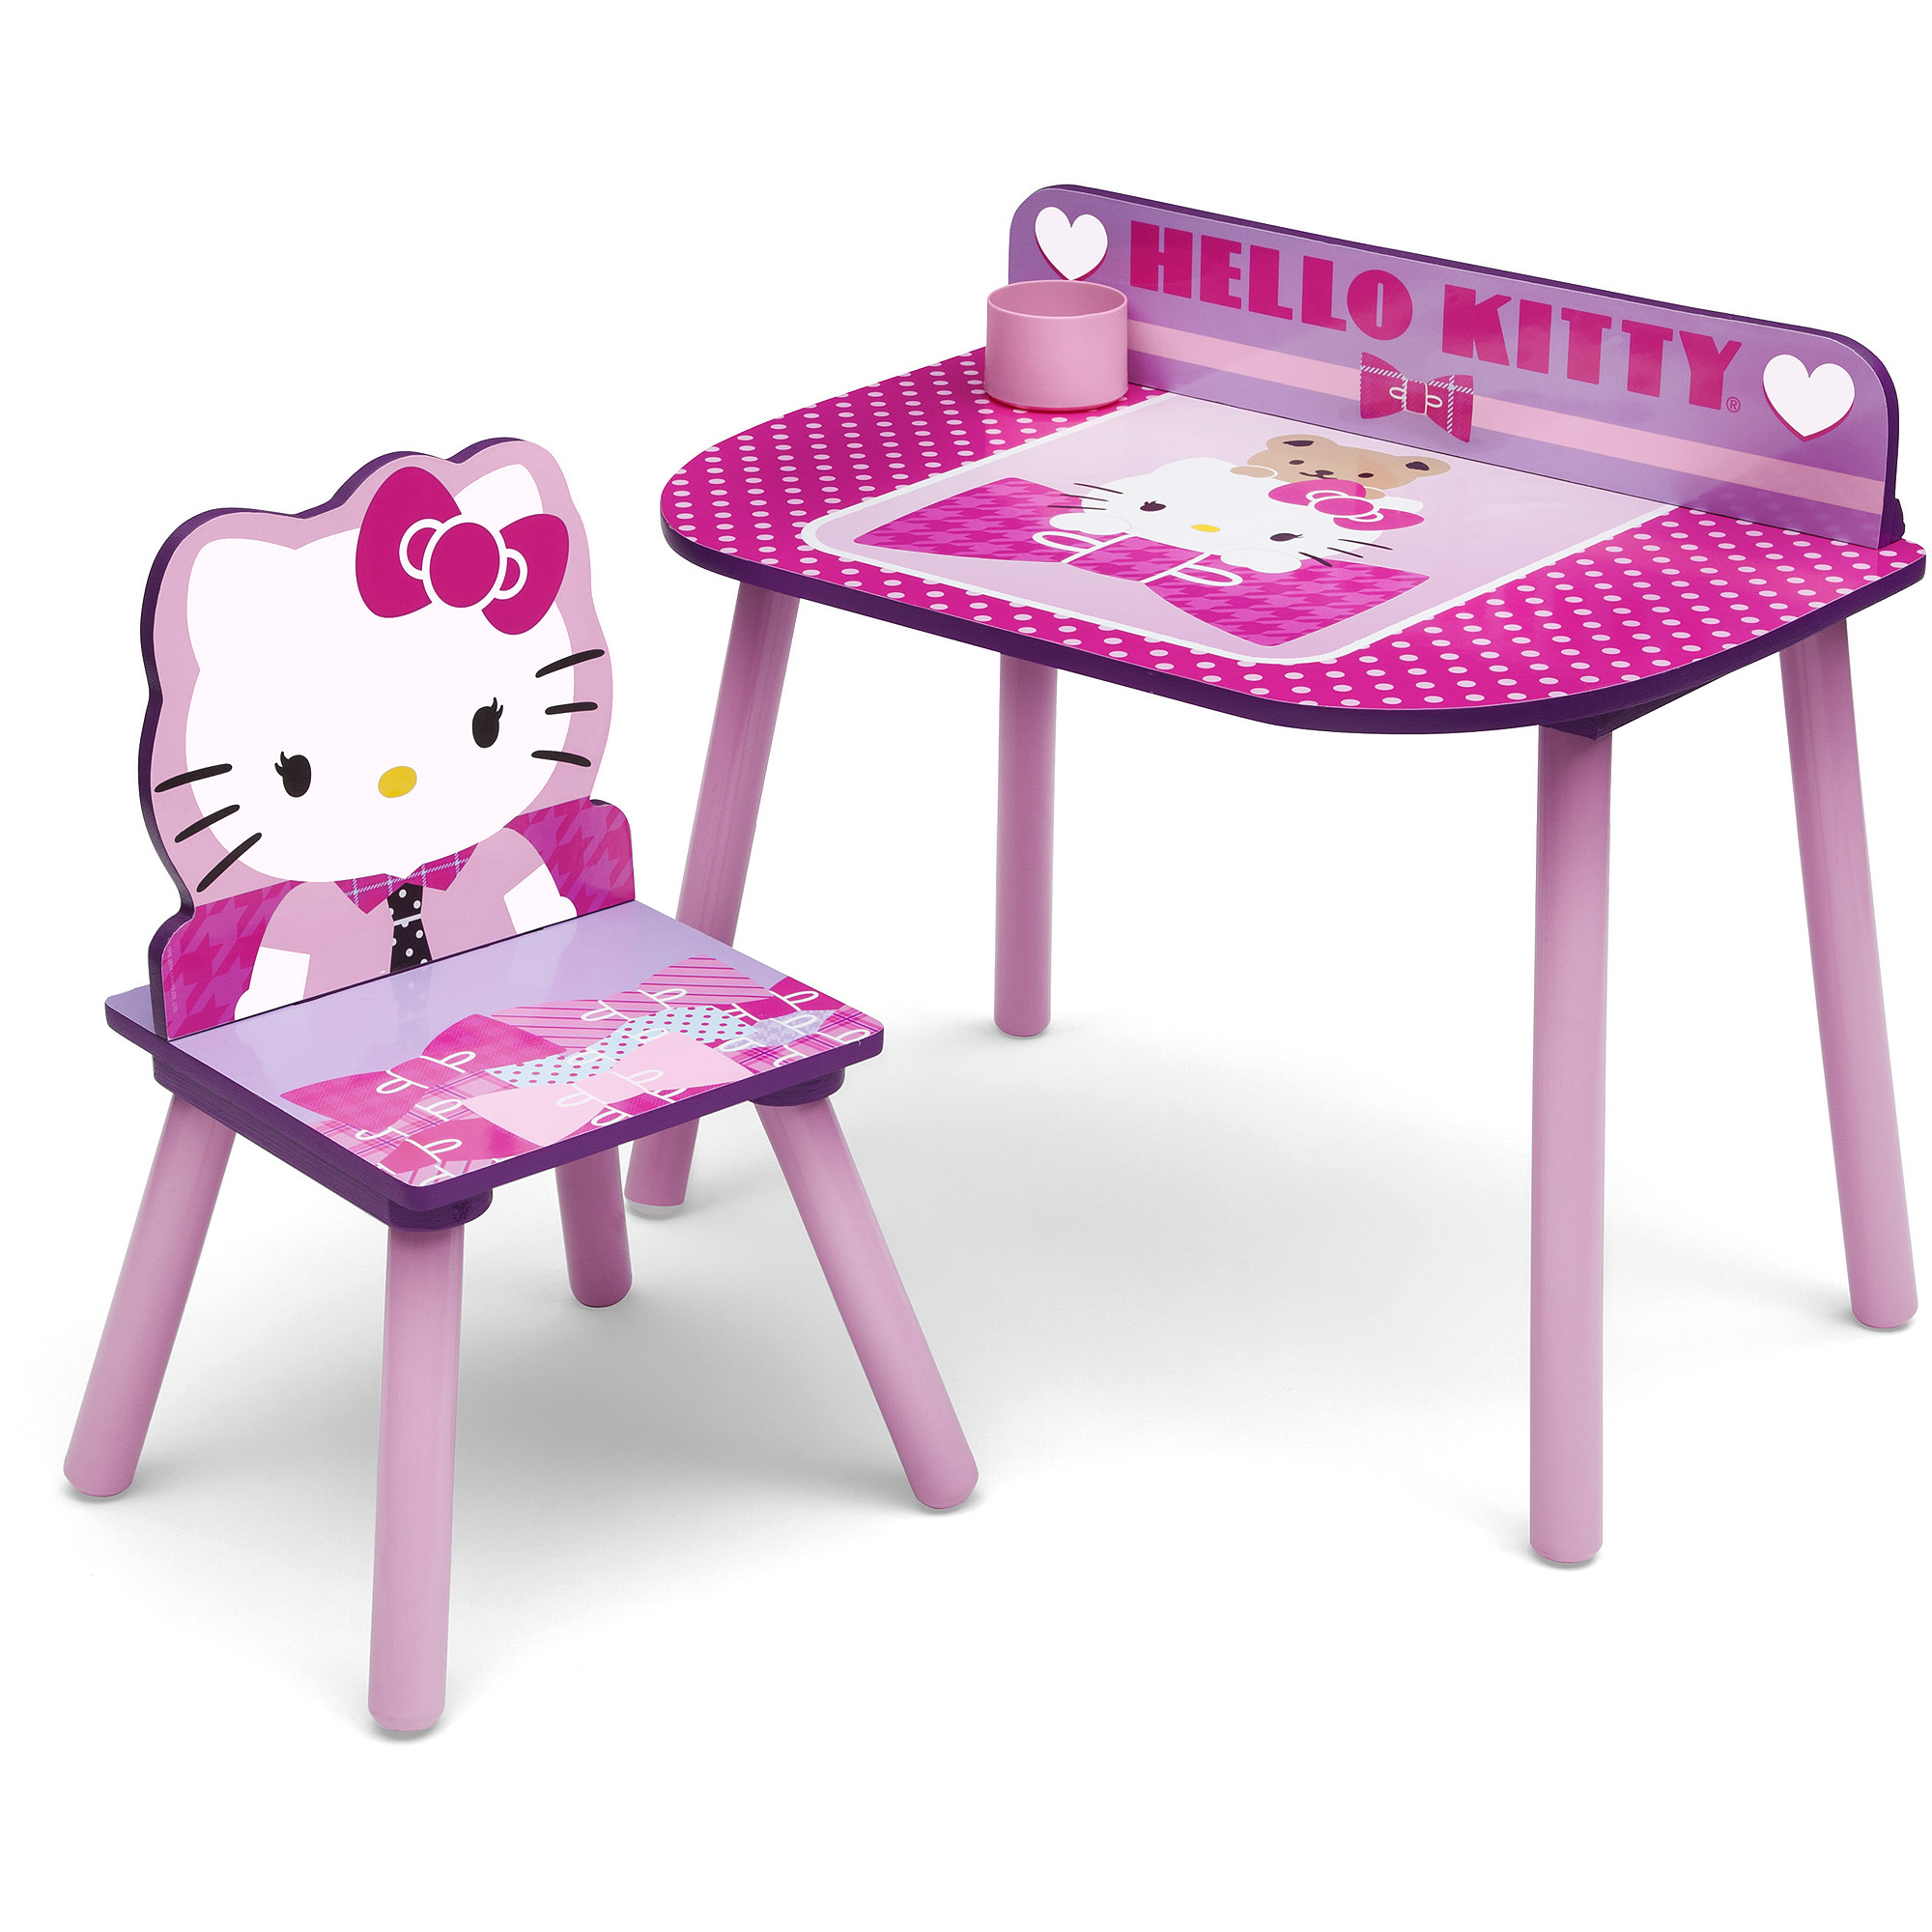 Hello kitty chair - Girls Character Desk And Chair Set With Bonus Multi Bin Toy Organizer Walmart Com